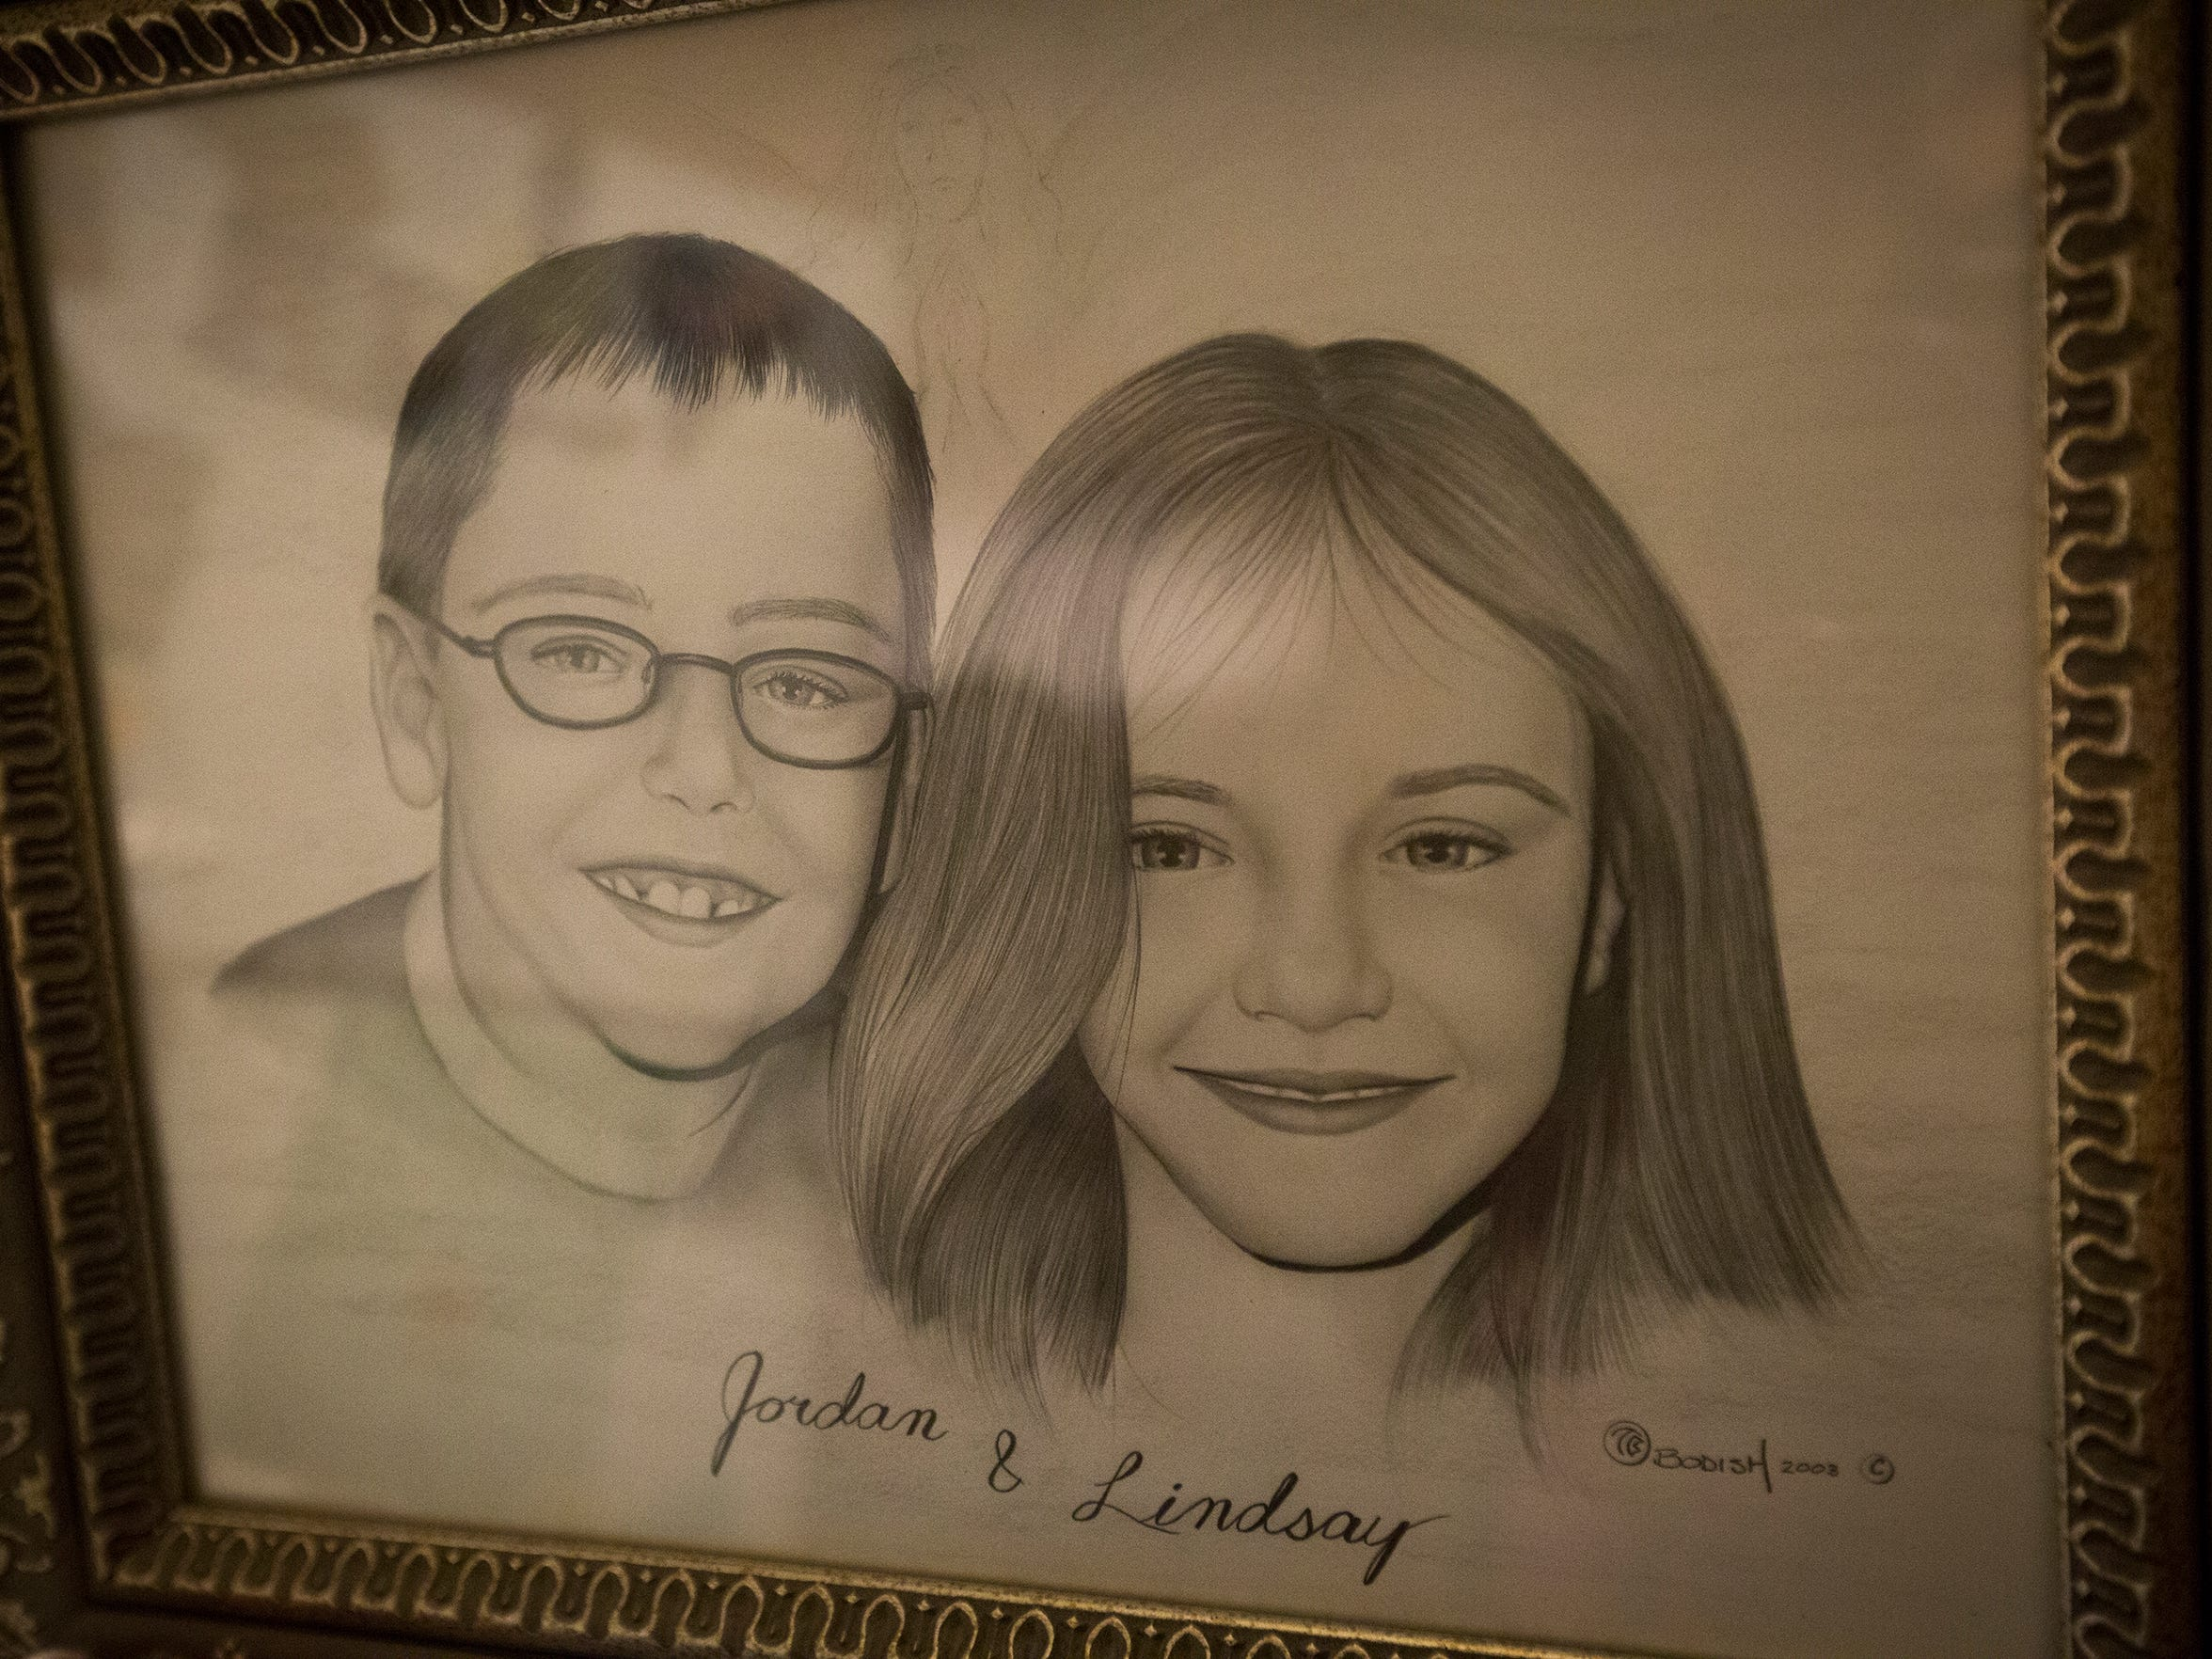 A pencil drawing of the late Jordan and Lindsay Fox at their mother Karen's house in Dubuque, Monday, Dec. 21, 2015. The children were murdered by Karen Fox's estranged husband who also attacked her with a knife. Since her recovery, Fox has found a new faith-filled path and fosters young girls.